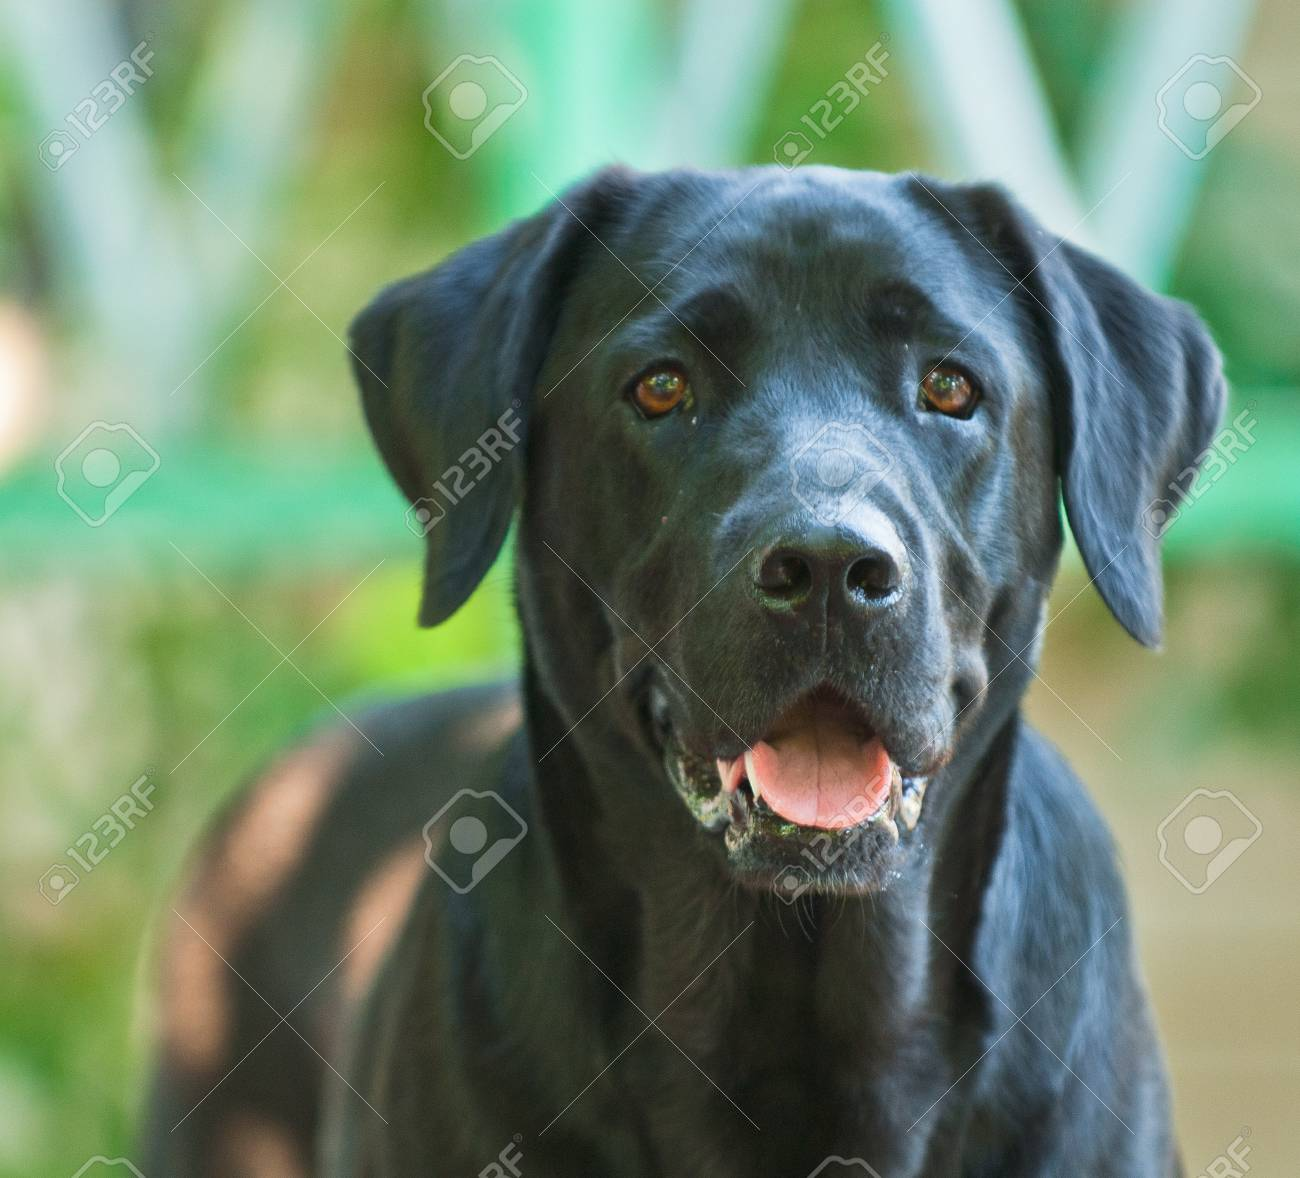 domestic animal on a beautiful background Stock Photo - 12587537